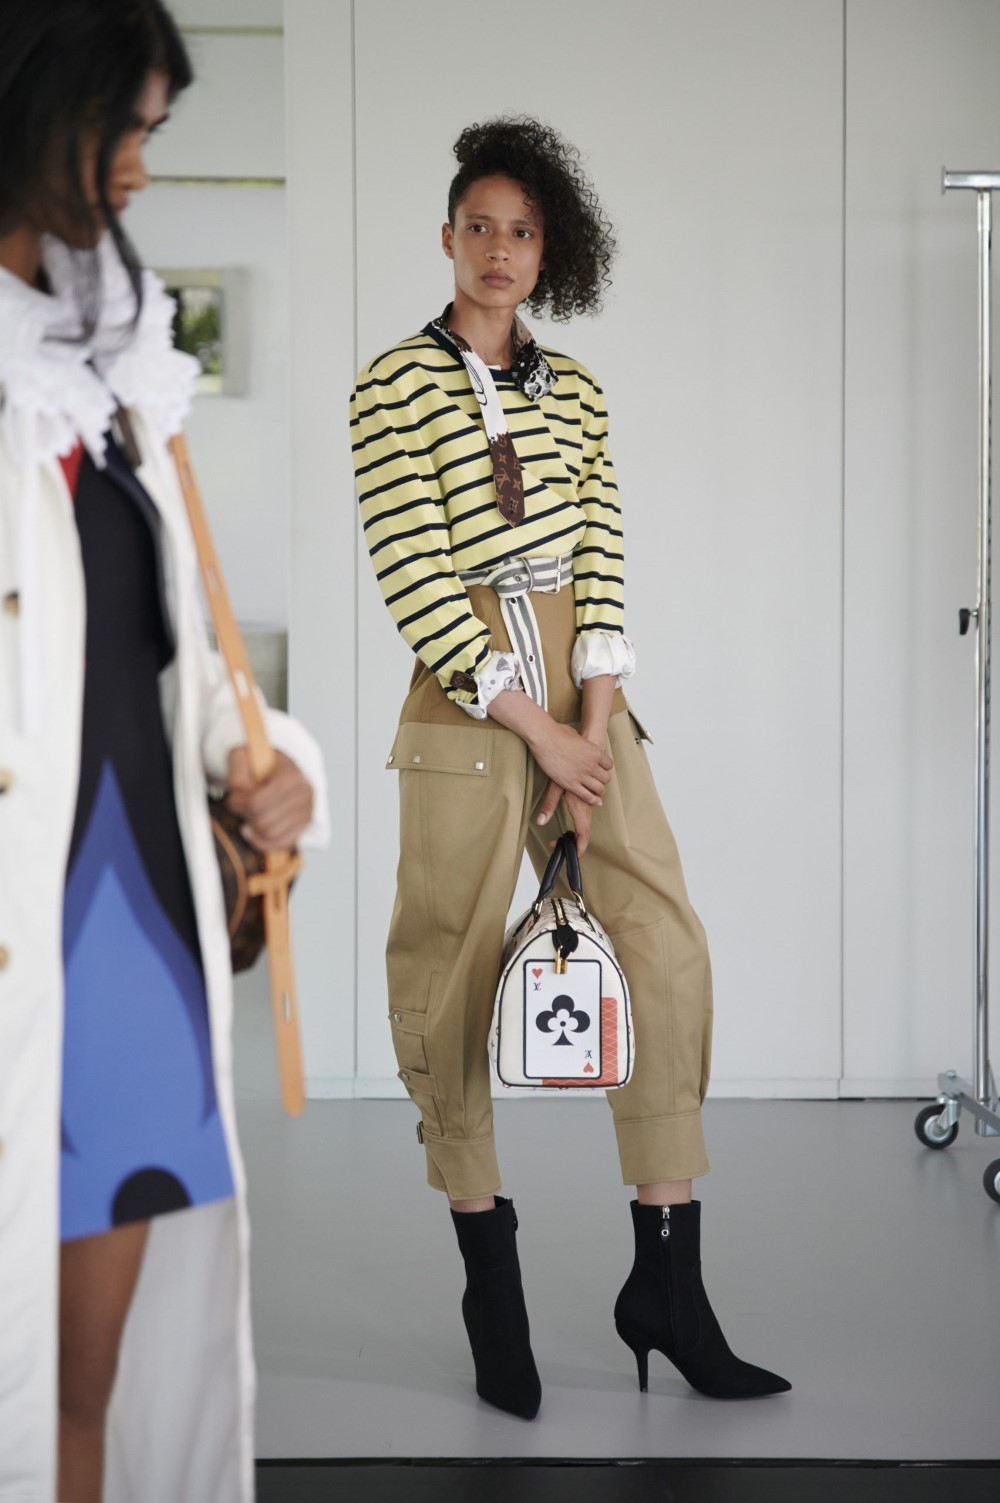 Louis Vuitton Cruise 2021 Lookbook